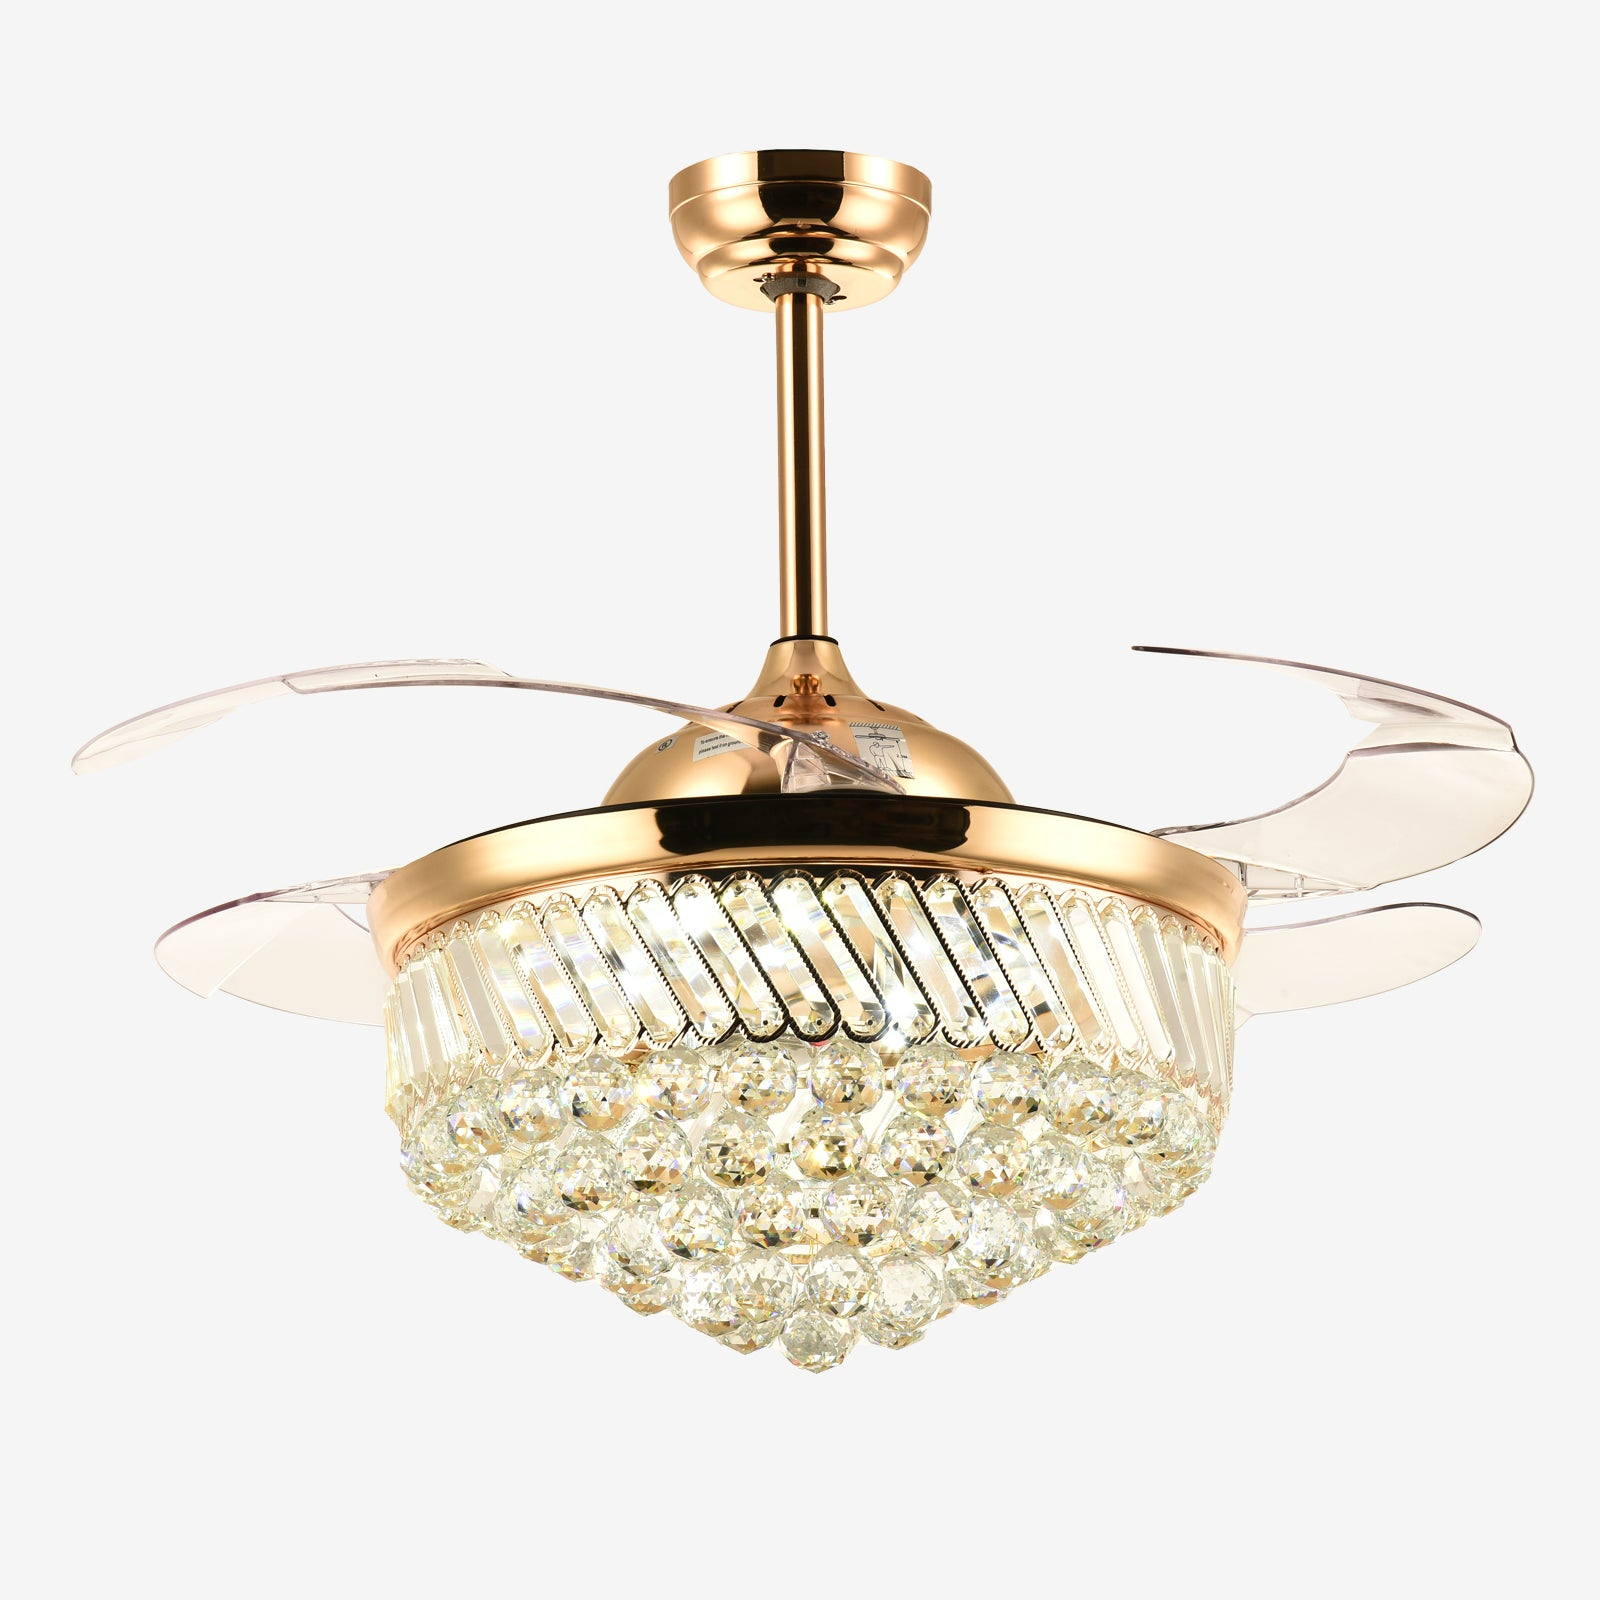 discus ideas trio decoration feiss parts classy fixtures murray for ceilings retractable home cool replacement carlo ceiling ceili fan monte light fans